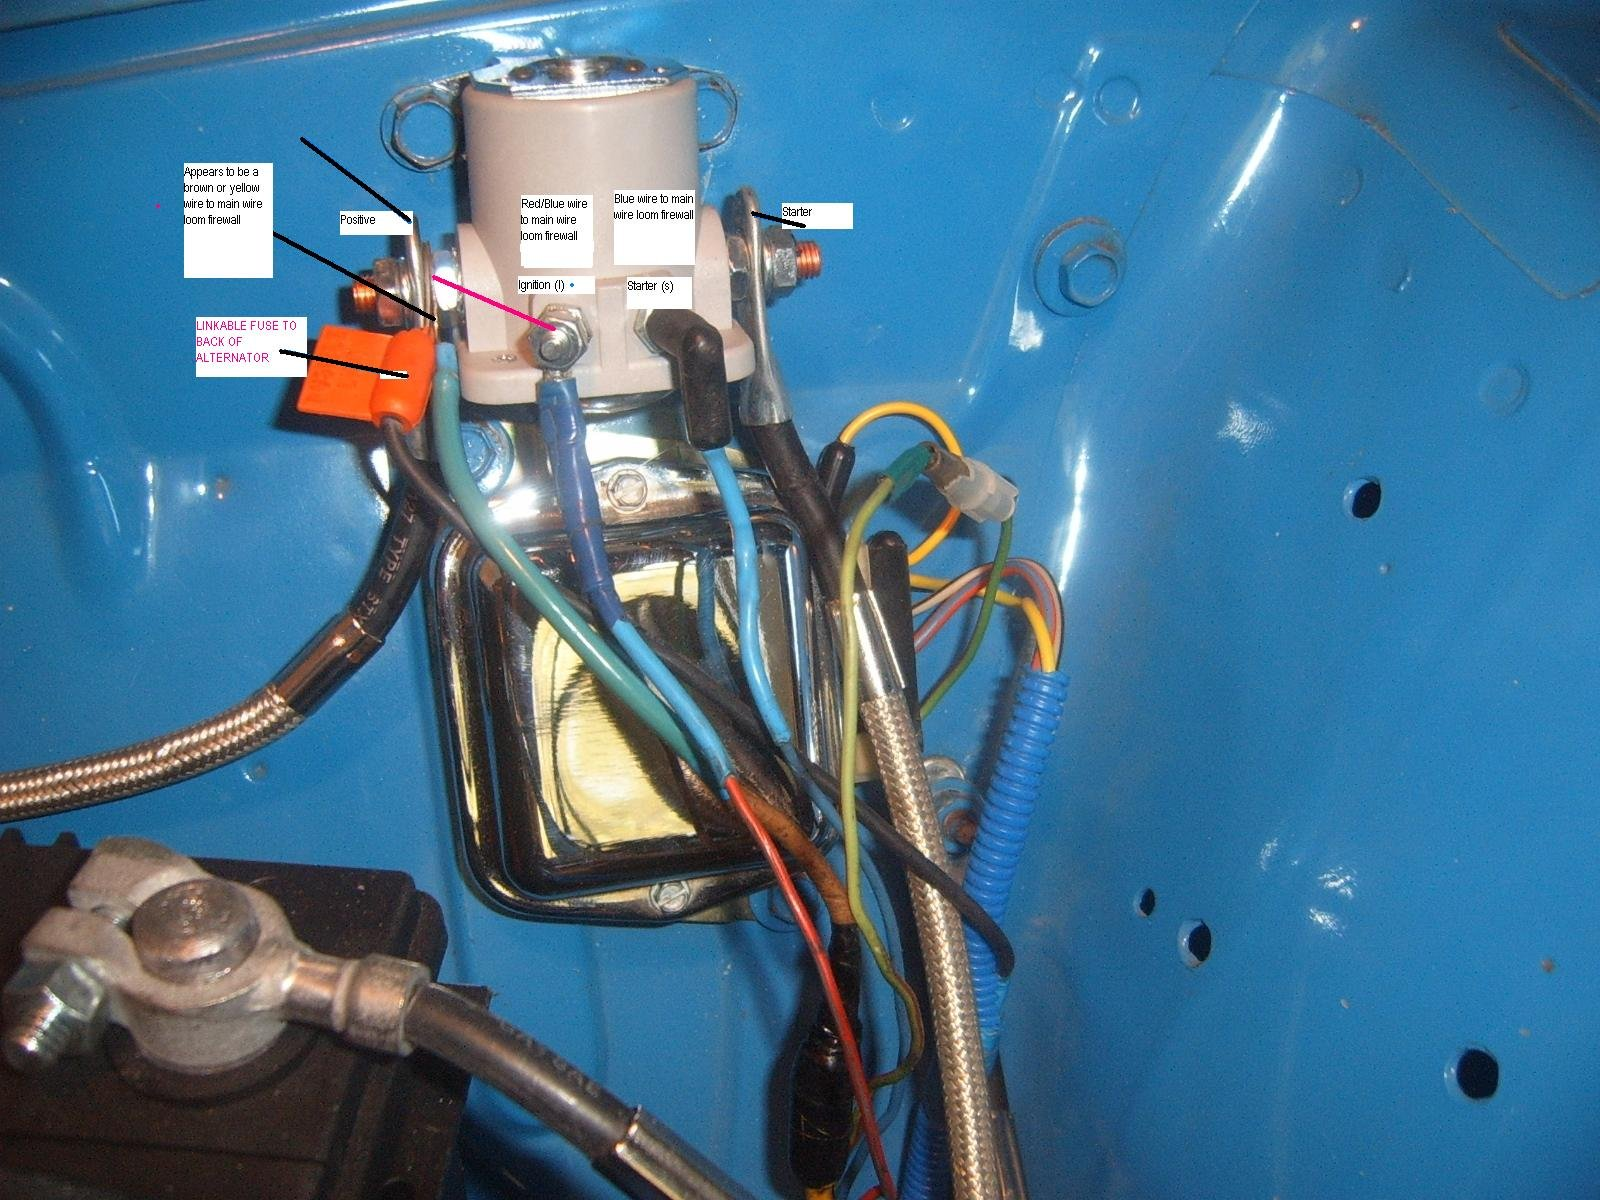 351w Wiring Diagram Landor Ford 302 Firing 1971 Mustang Ignition Issue Need Help Forum 1972 Order